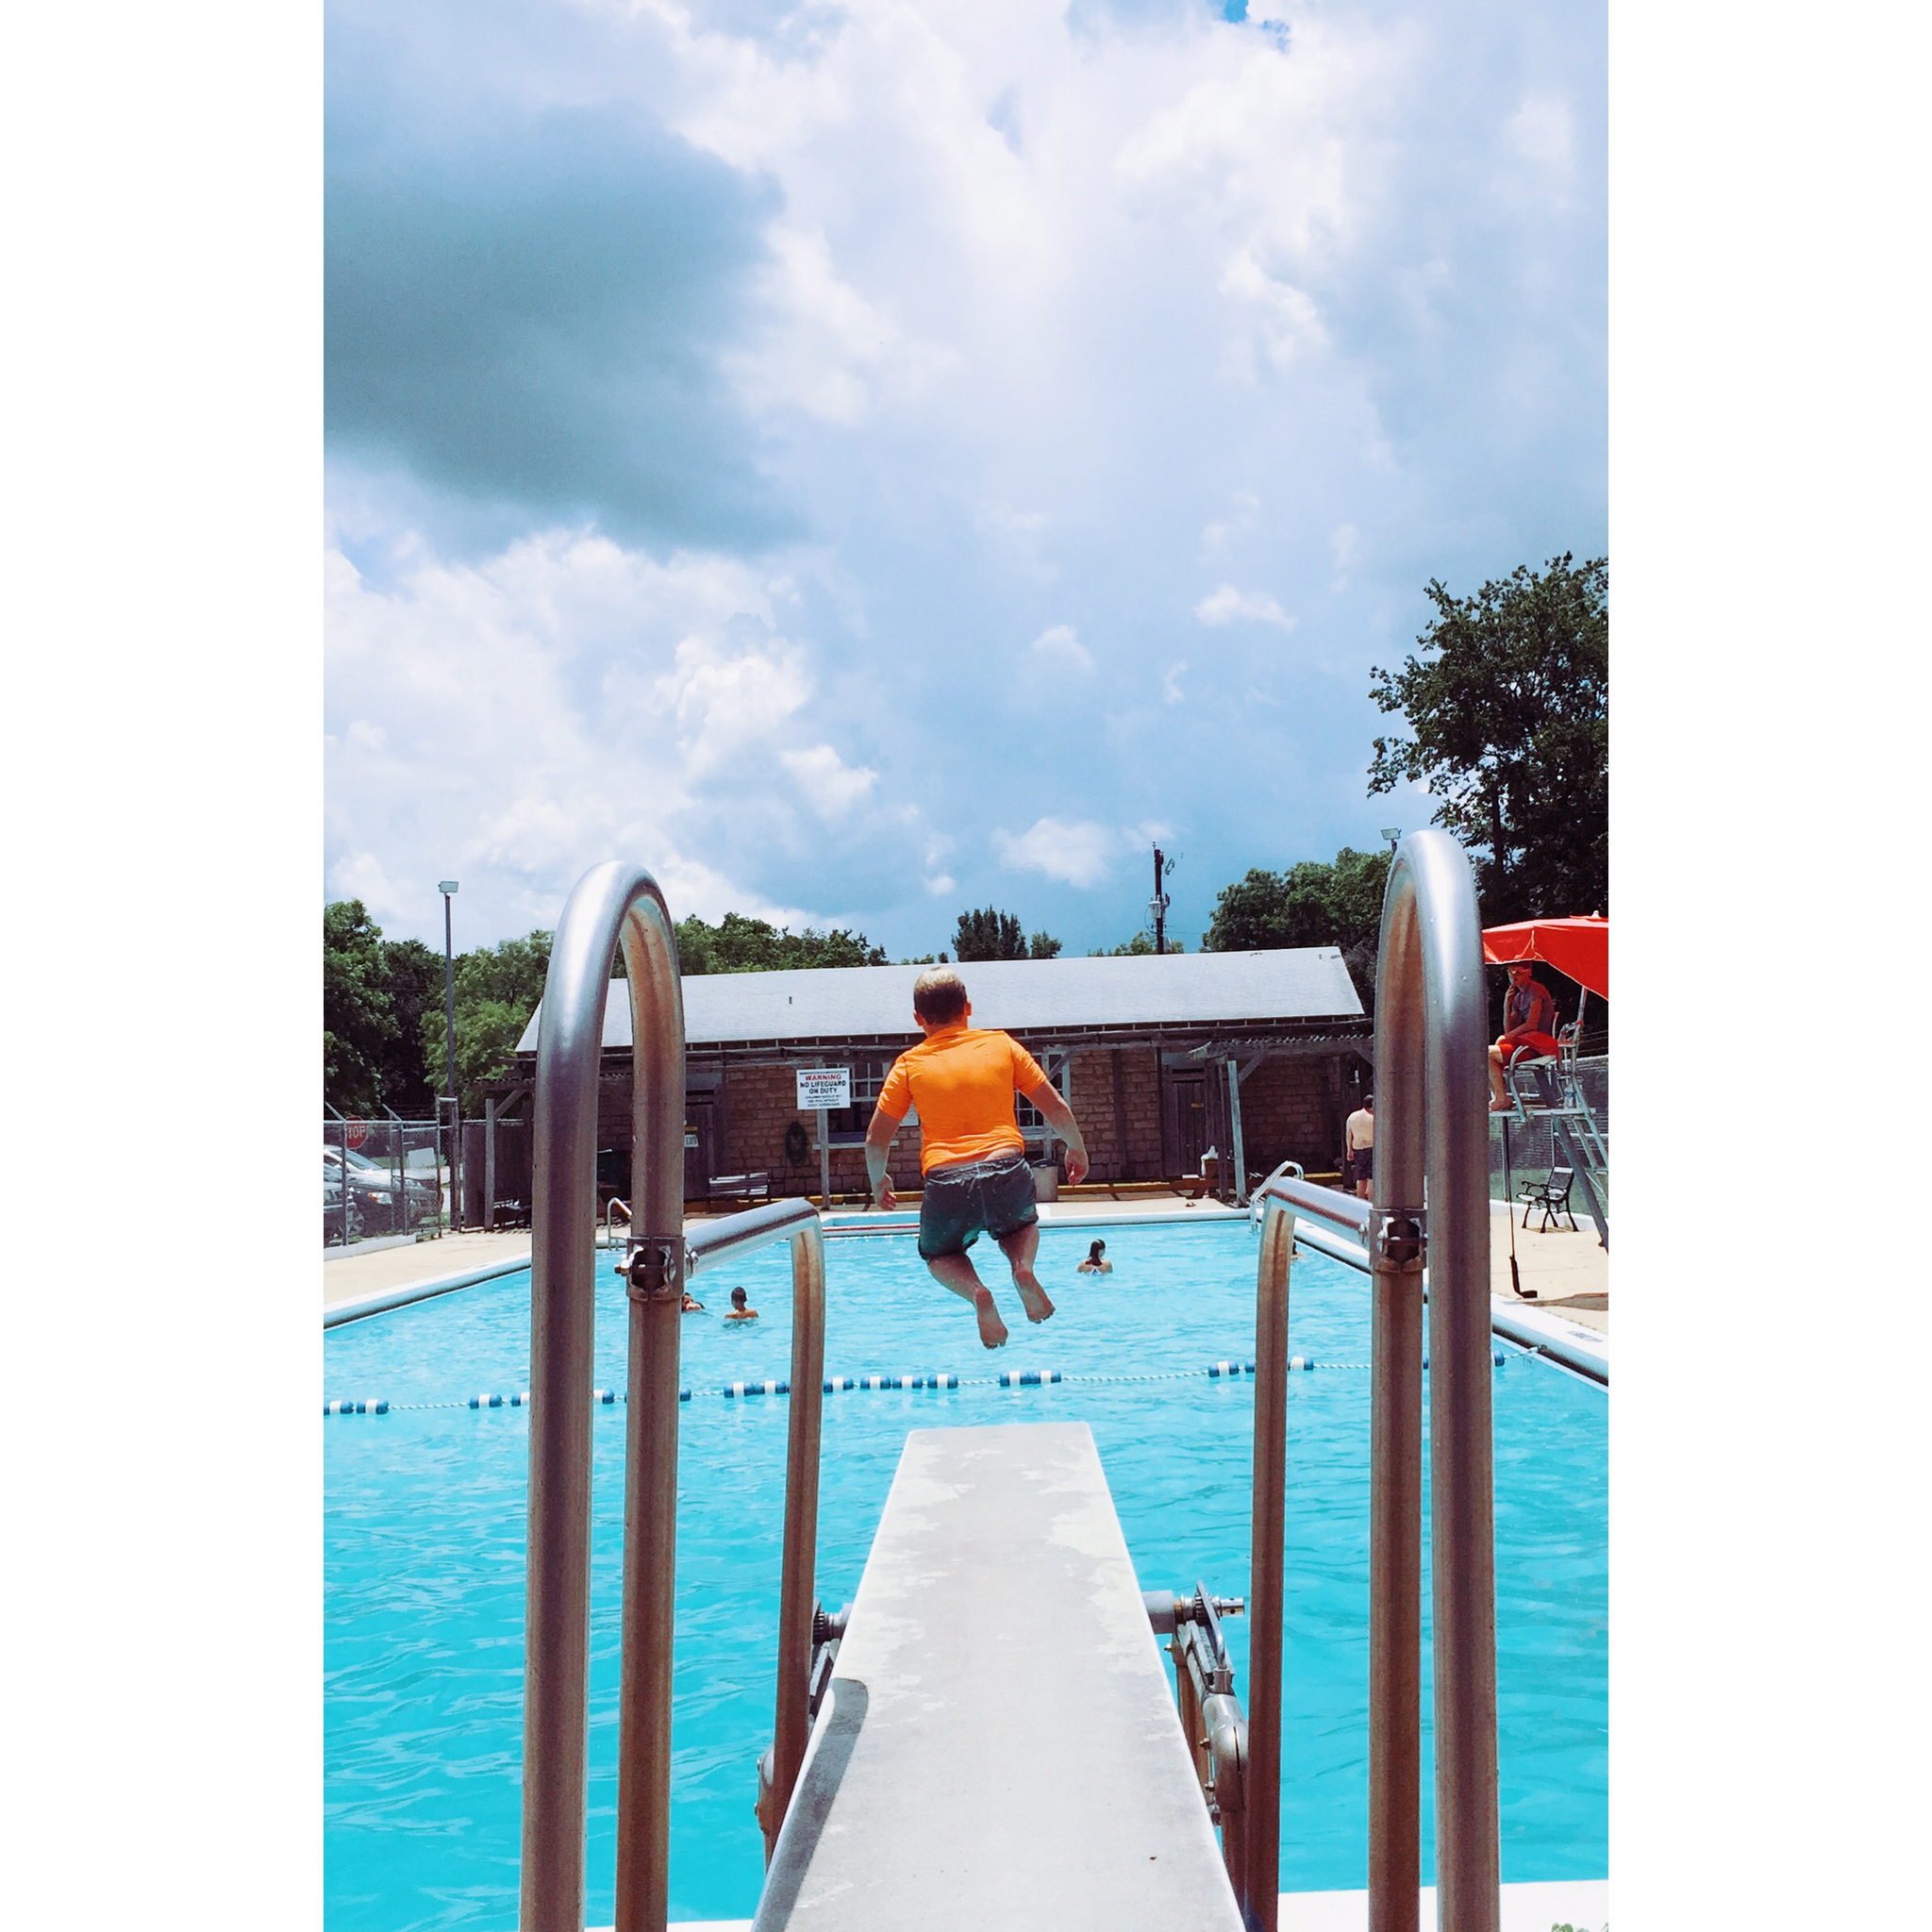 Boy jumping off the diving board into the pool